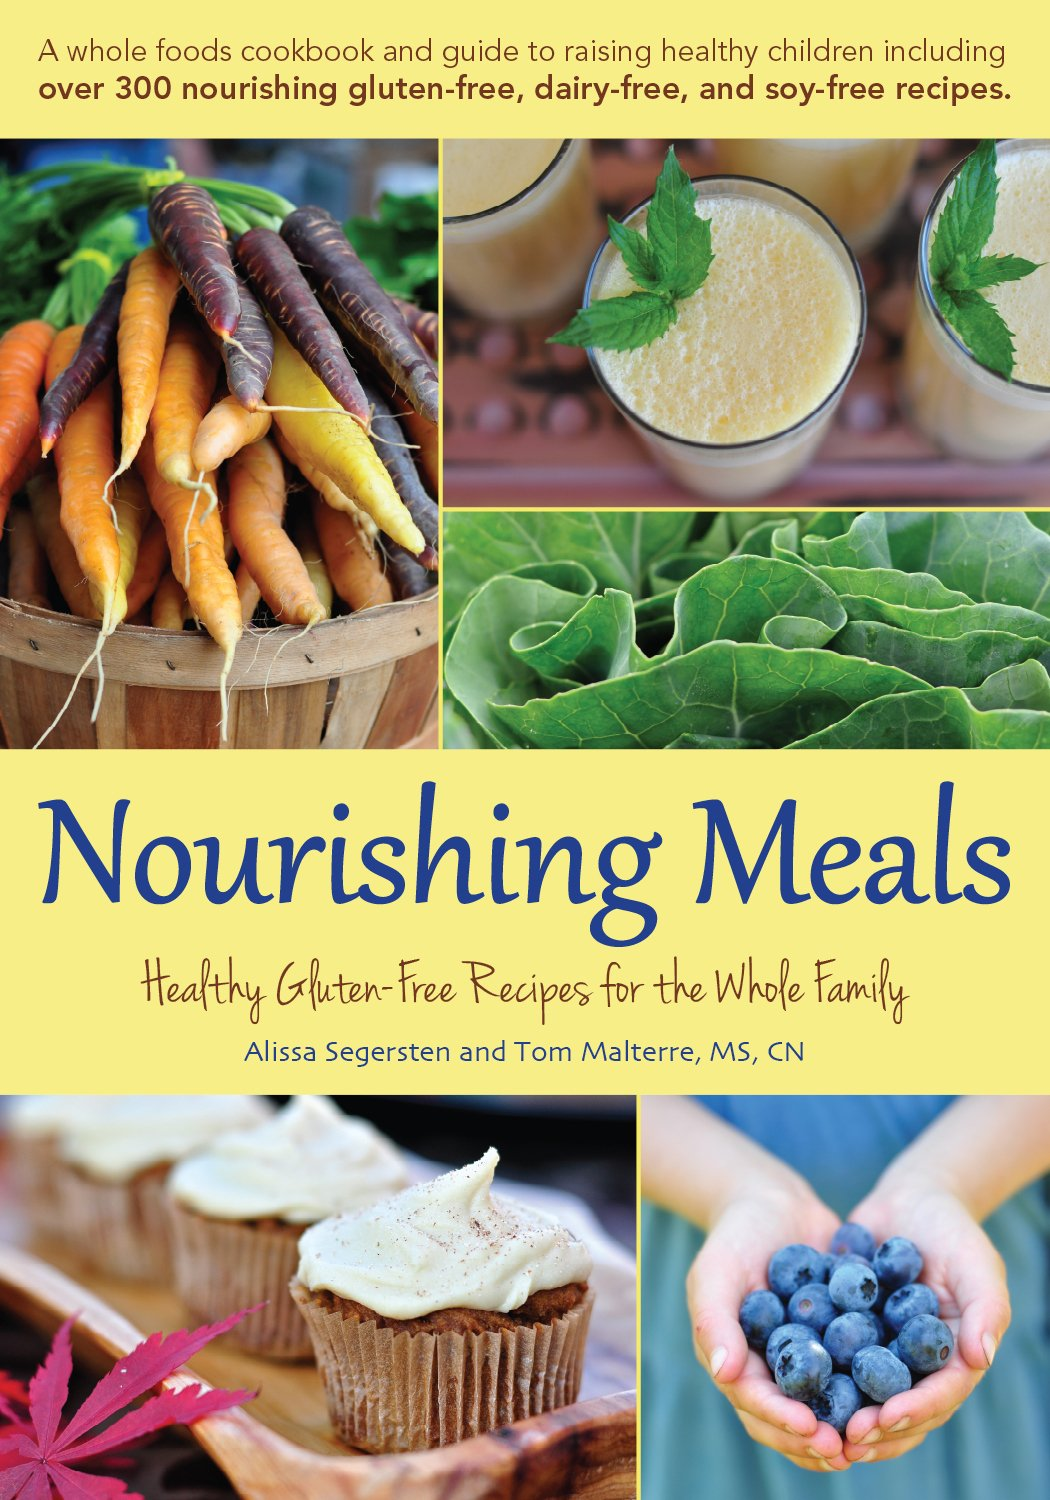 Nourishing meals healthy gluten free recipes for the whole family nourishing meals healthy gluten free recipes for the whole family alissa segersten tom malterre ms cn 9780979885921 amazon books forumfinder Image collections